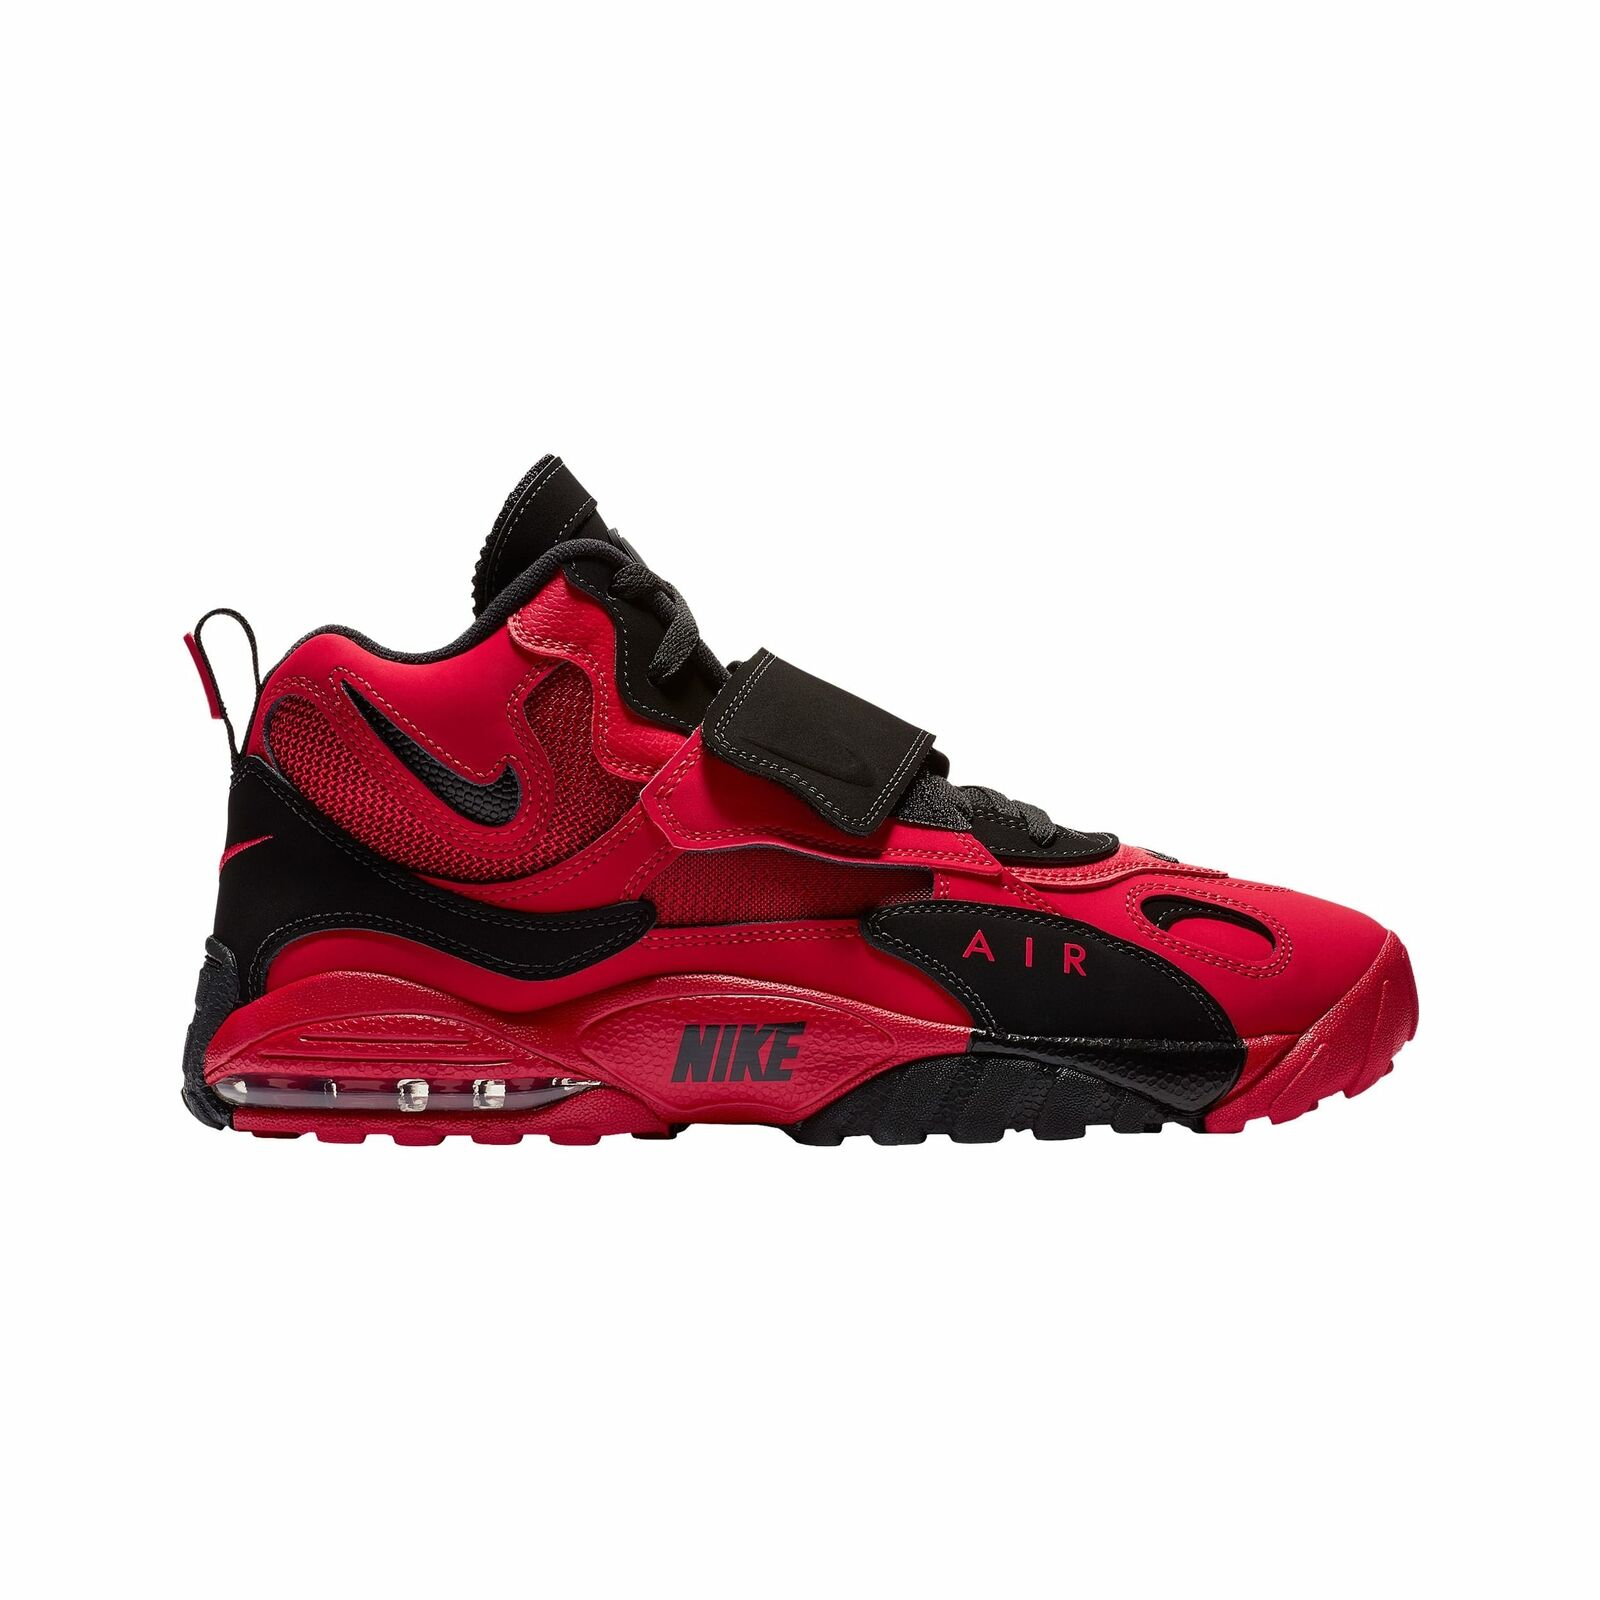 a28d380692 Nike Air Speed Turf Men's Red Black V7895600 Max - nyzbjg10288 ...